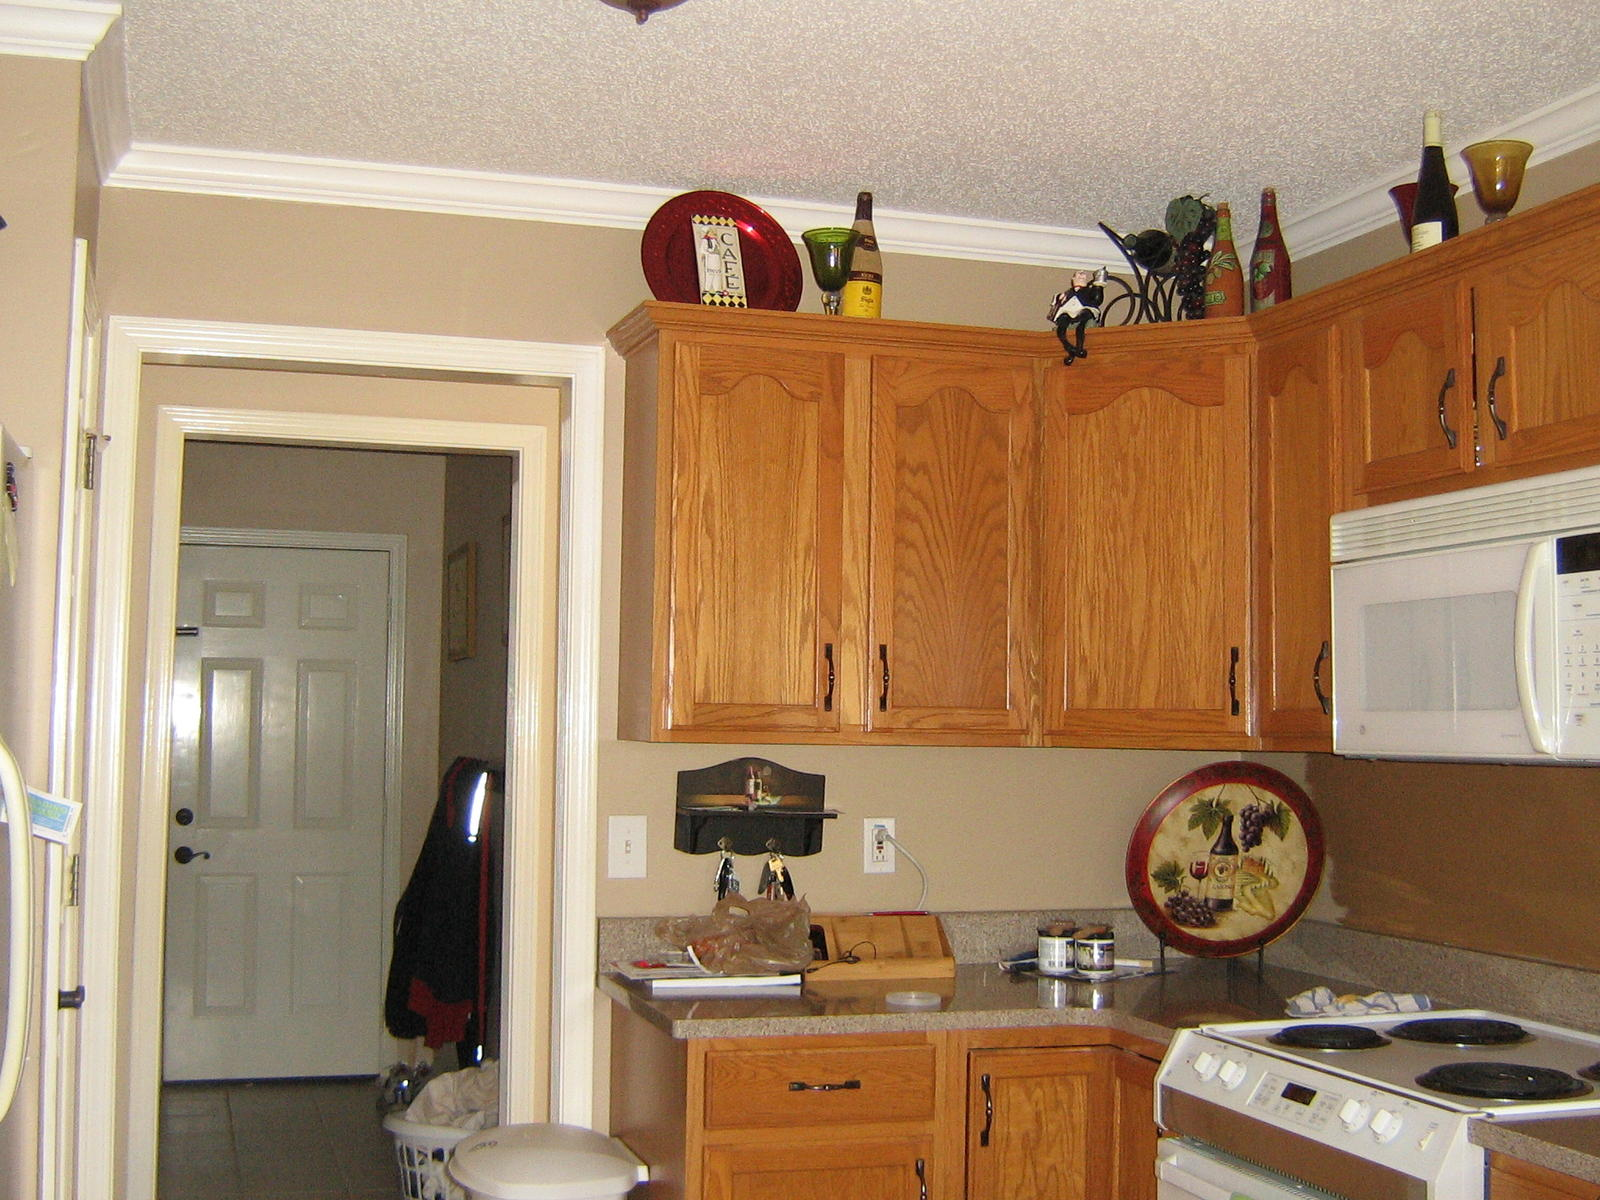 Please help choosing paint color for kitchen cabinets for Kitchen cabinet paint colors ideas